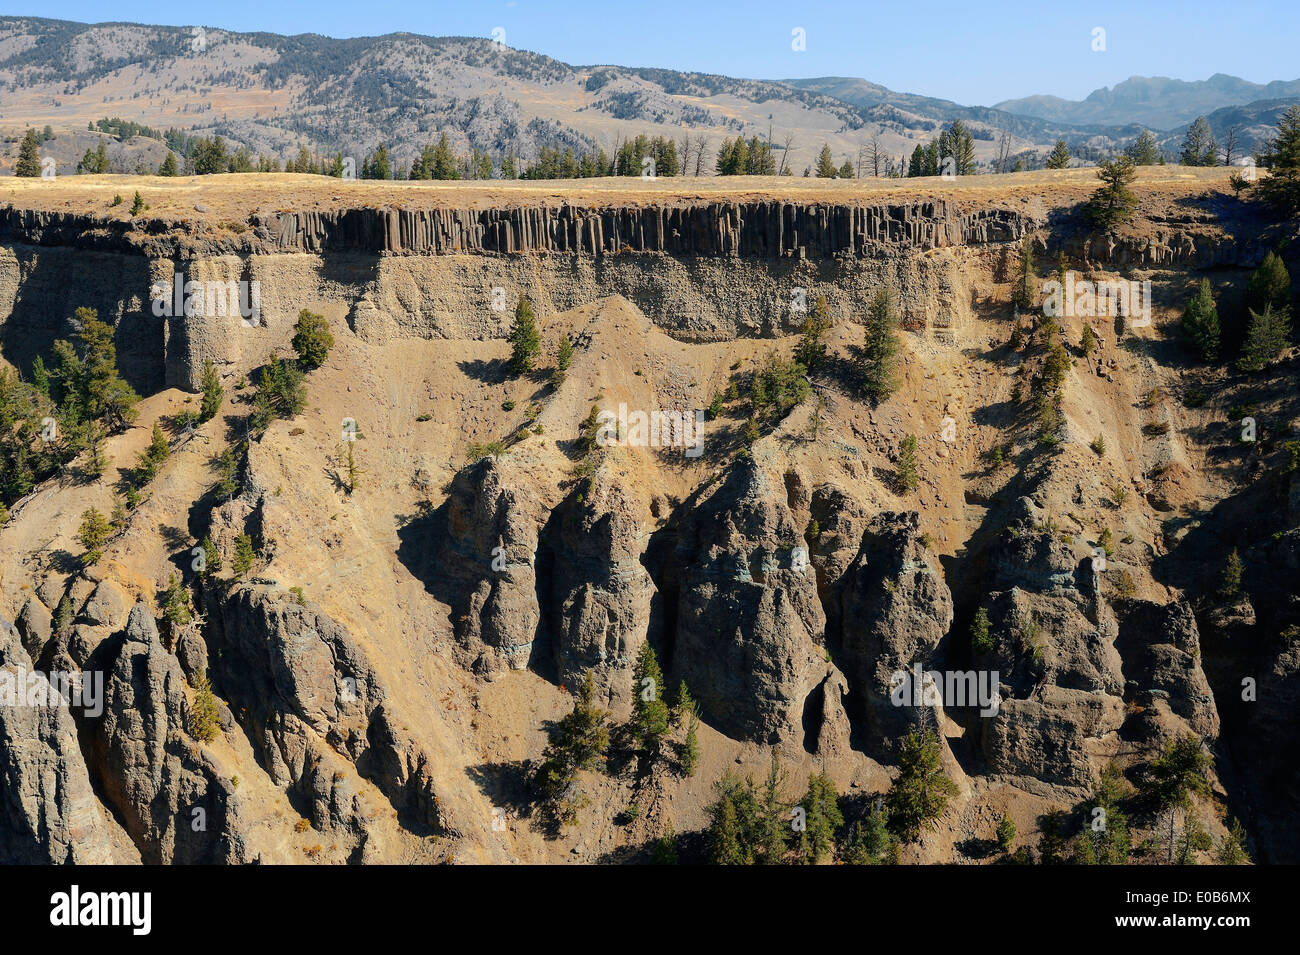 Columnar basalt formations near Tower Fall, Yellowstone national park, Wyoming, USA - Stock Image